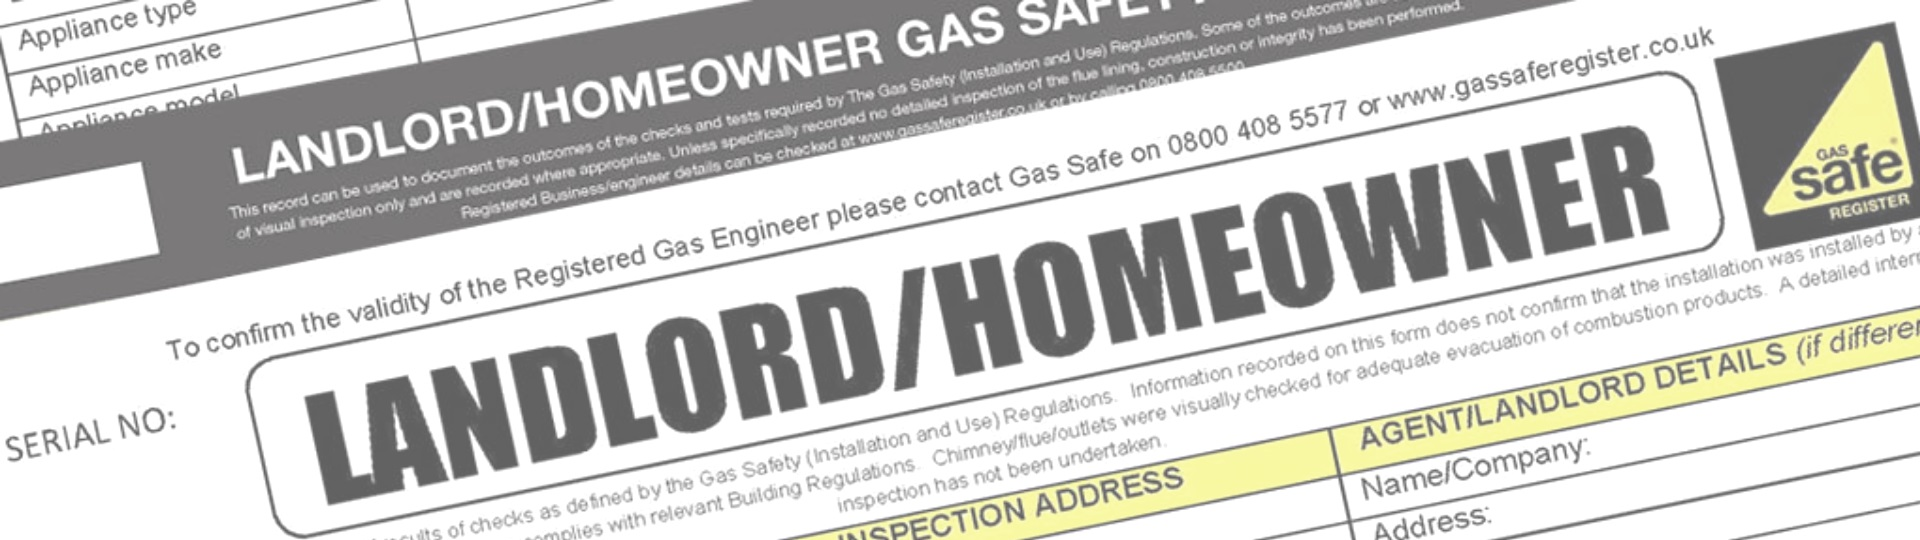 Gas Saftey Certificates Staple Hill